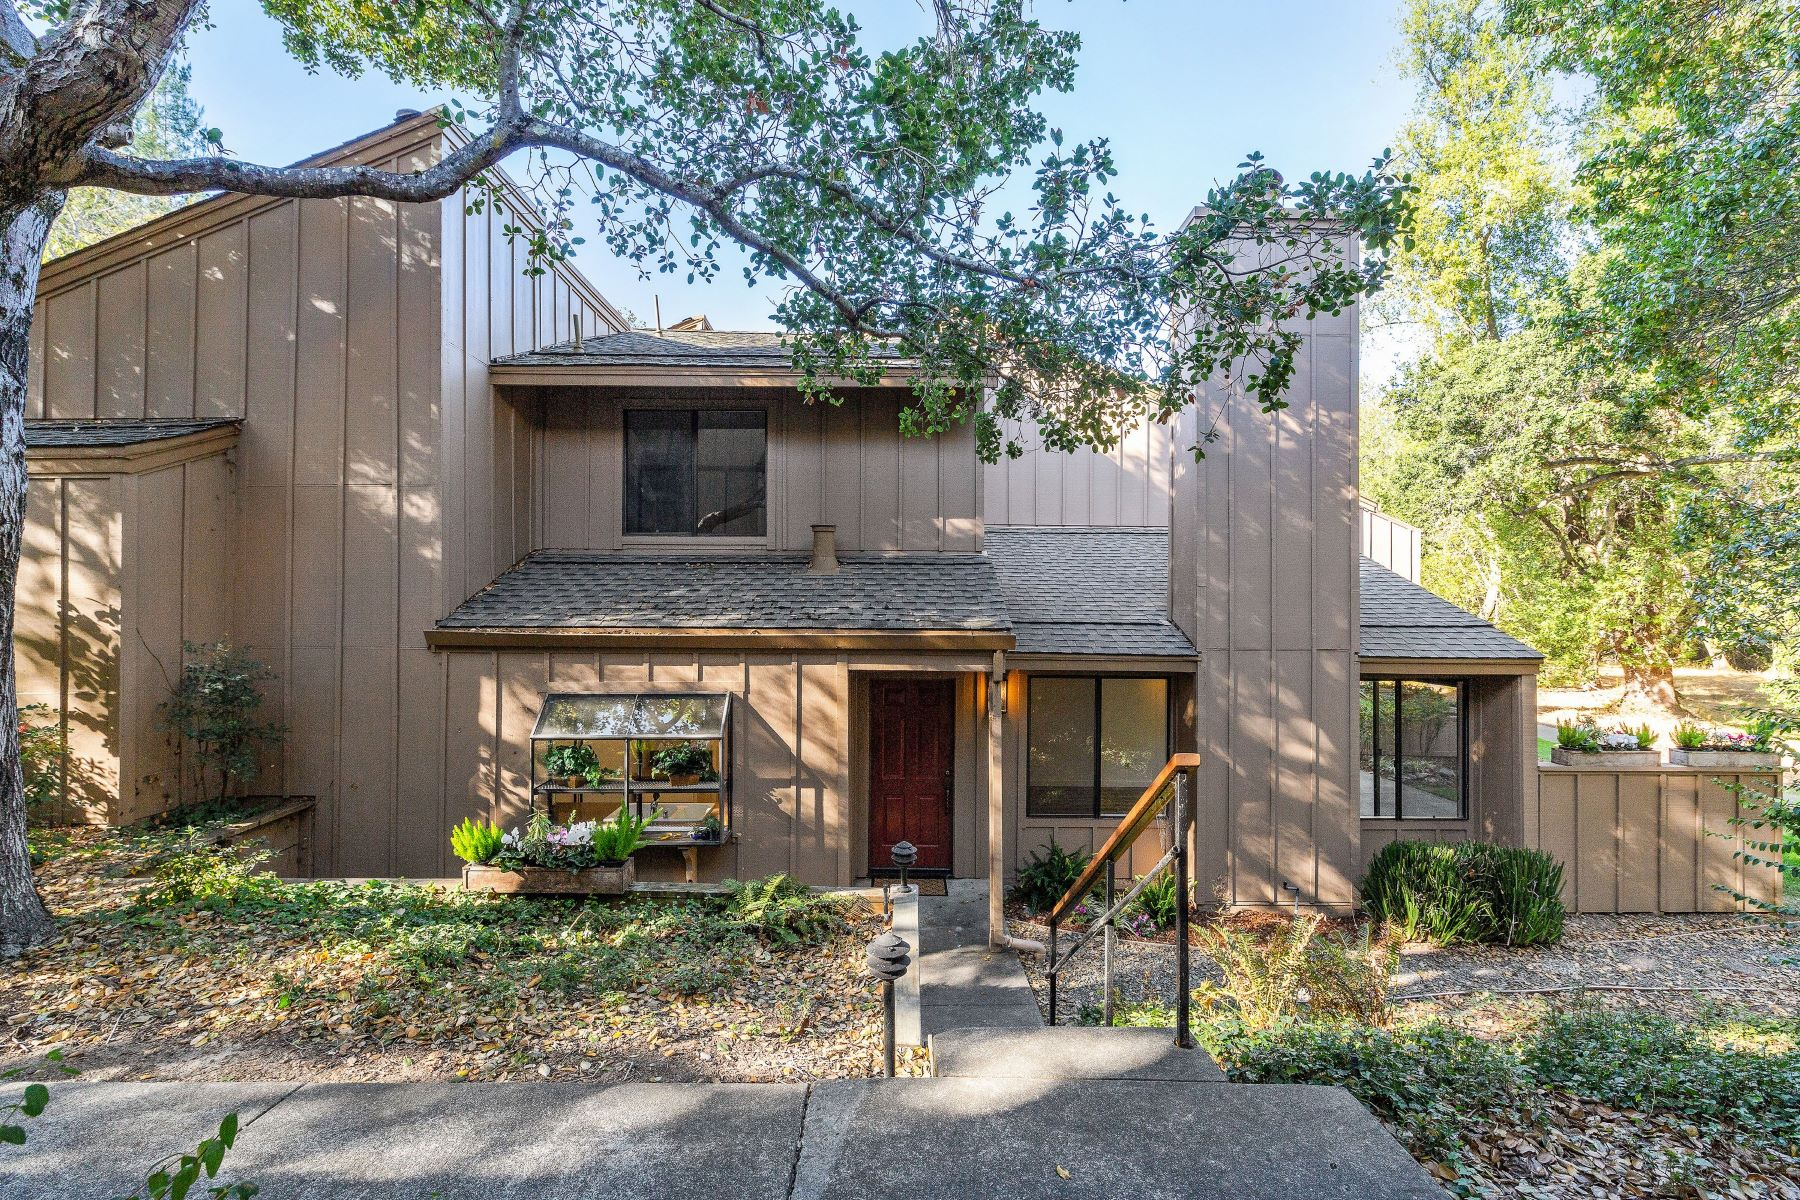 Property for Sale at Your Best Holiday Present! 45 Flicker Drive Novato, California 94949 United States